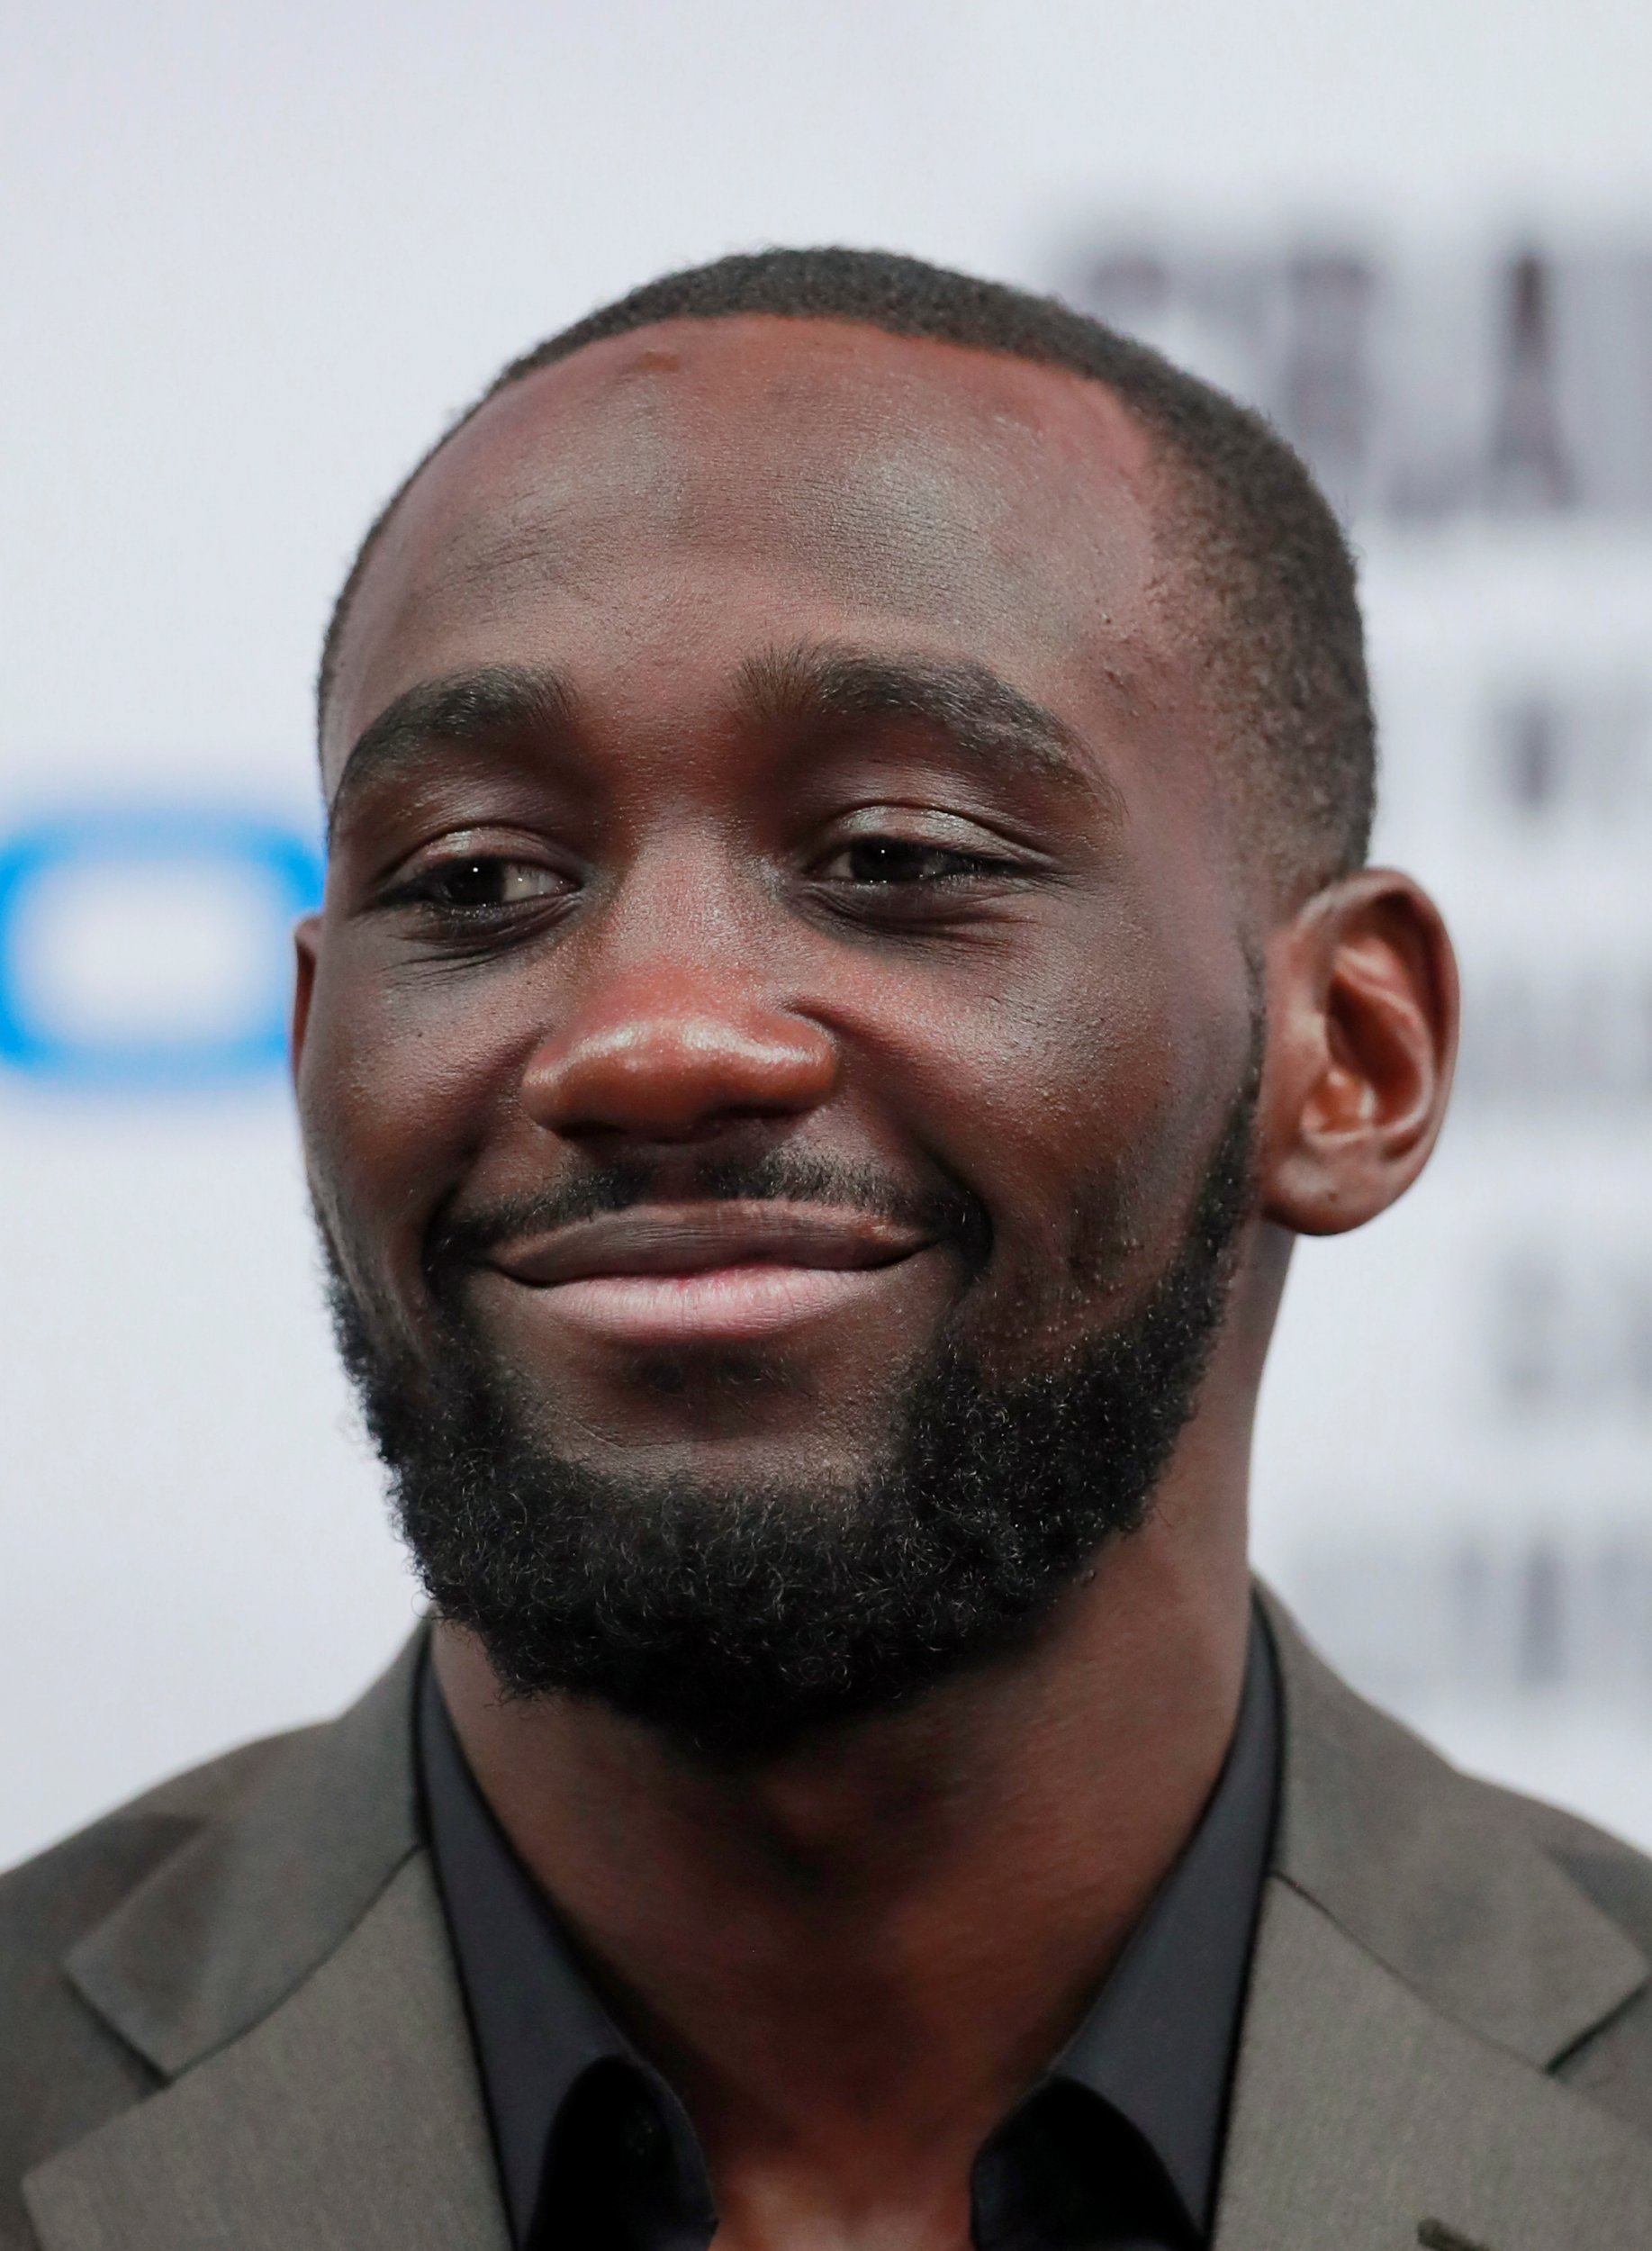 Terence Crawford used pilot training drills to prepare for Amir Khan